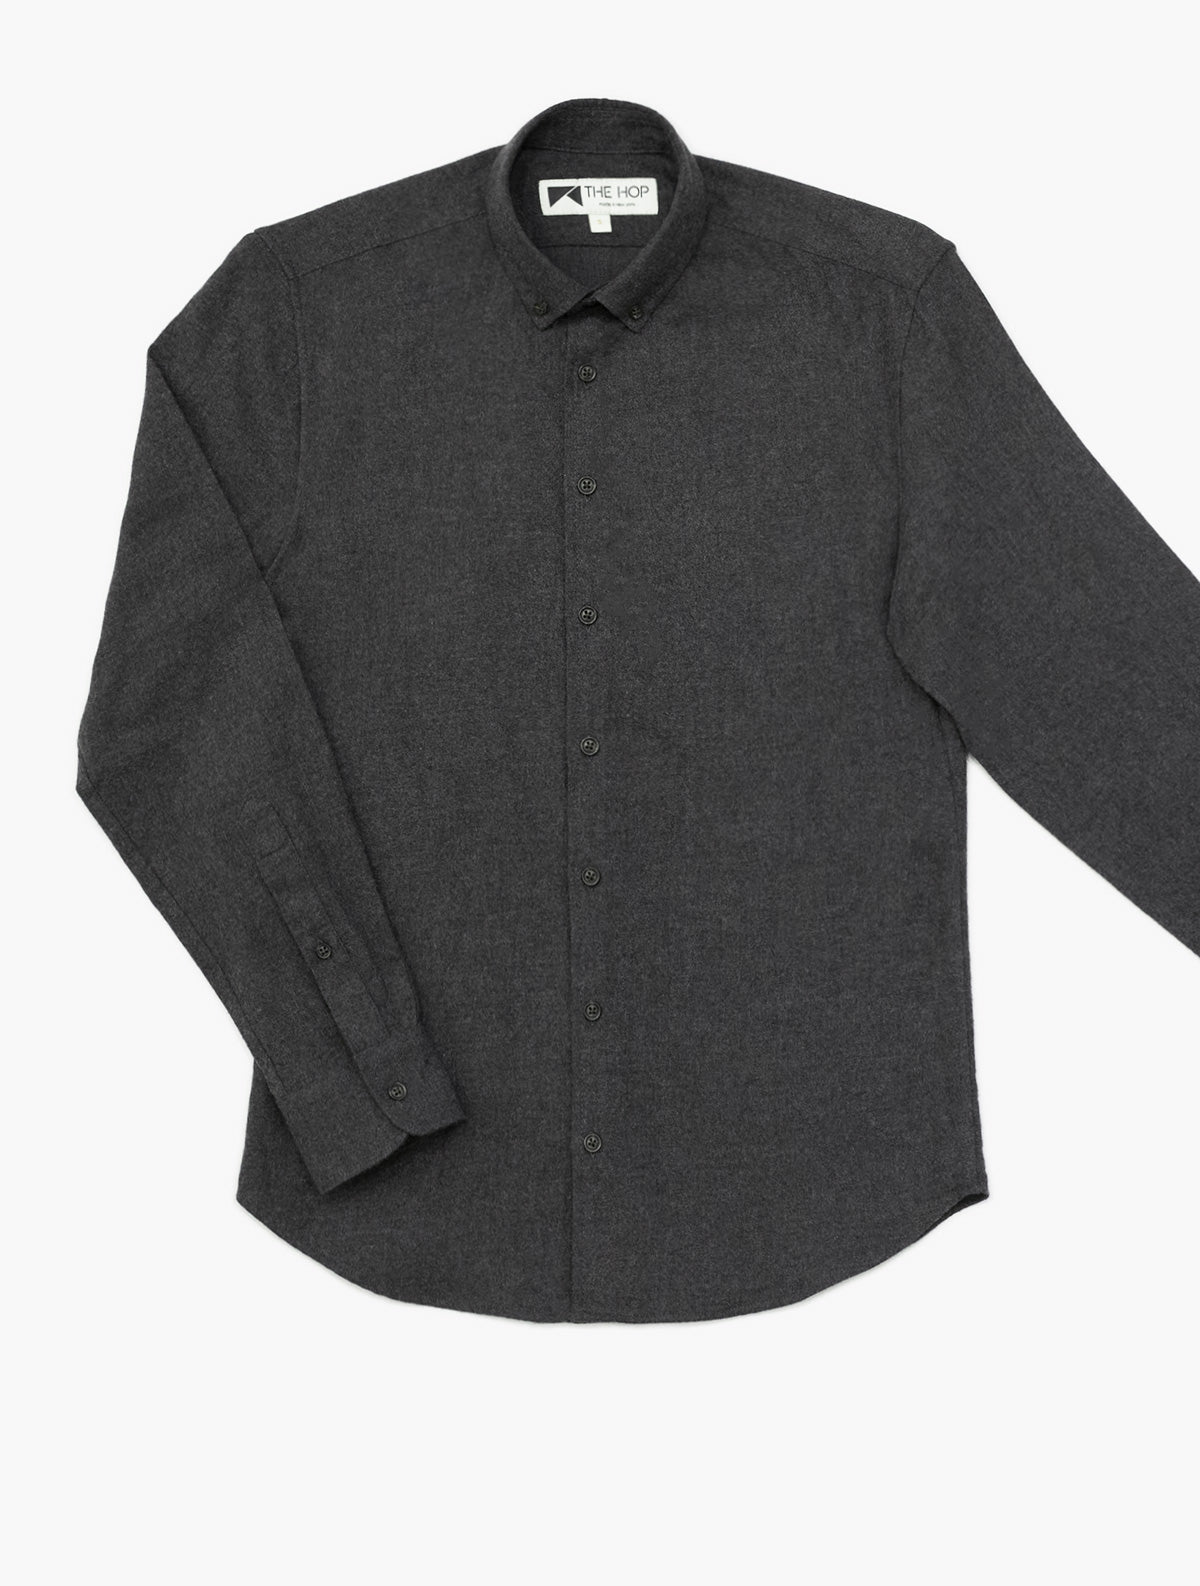 Bleecker Shirt in Charcoal